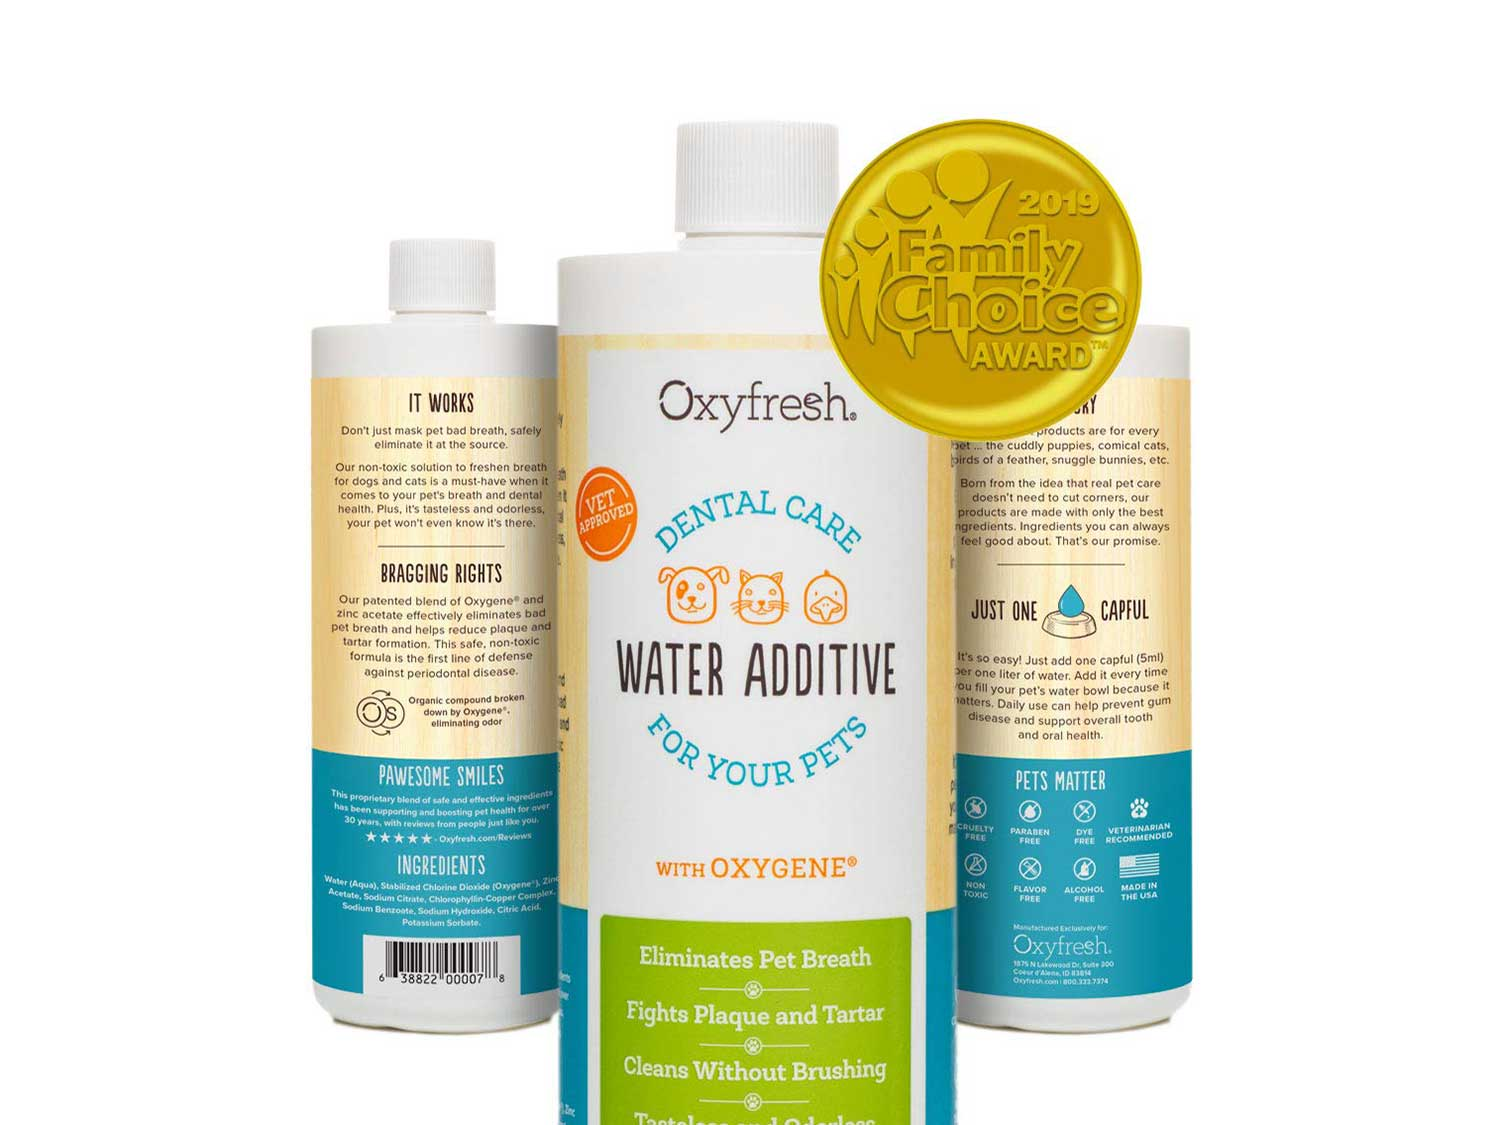 Oxyfresh Premium Pet Dental Care Solution: Best Way to Eliminate Bad Dog Breath & Cat Breath - Fights Tartar, Plaque & Gum Disease! - So Easy, just add to Water! Vet Recommended!